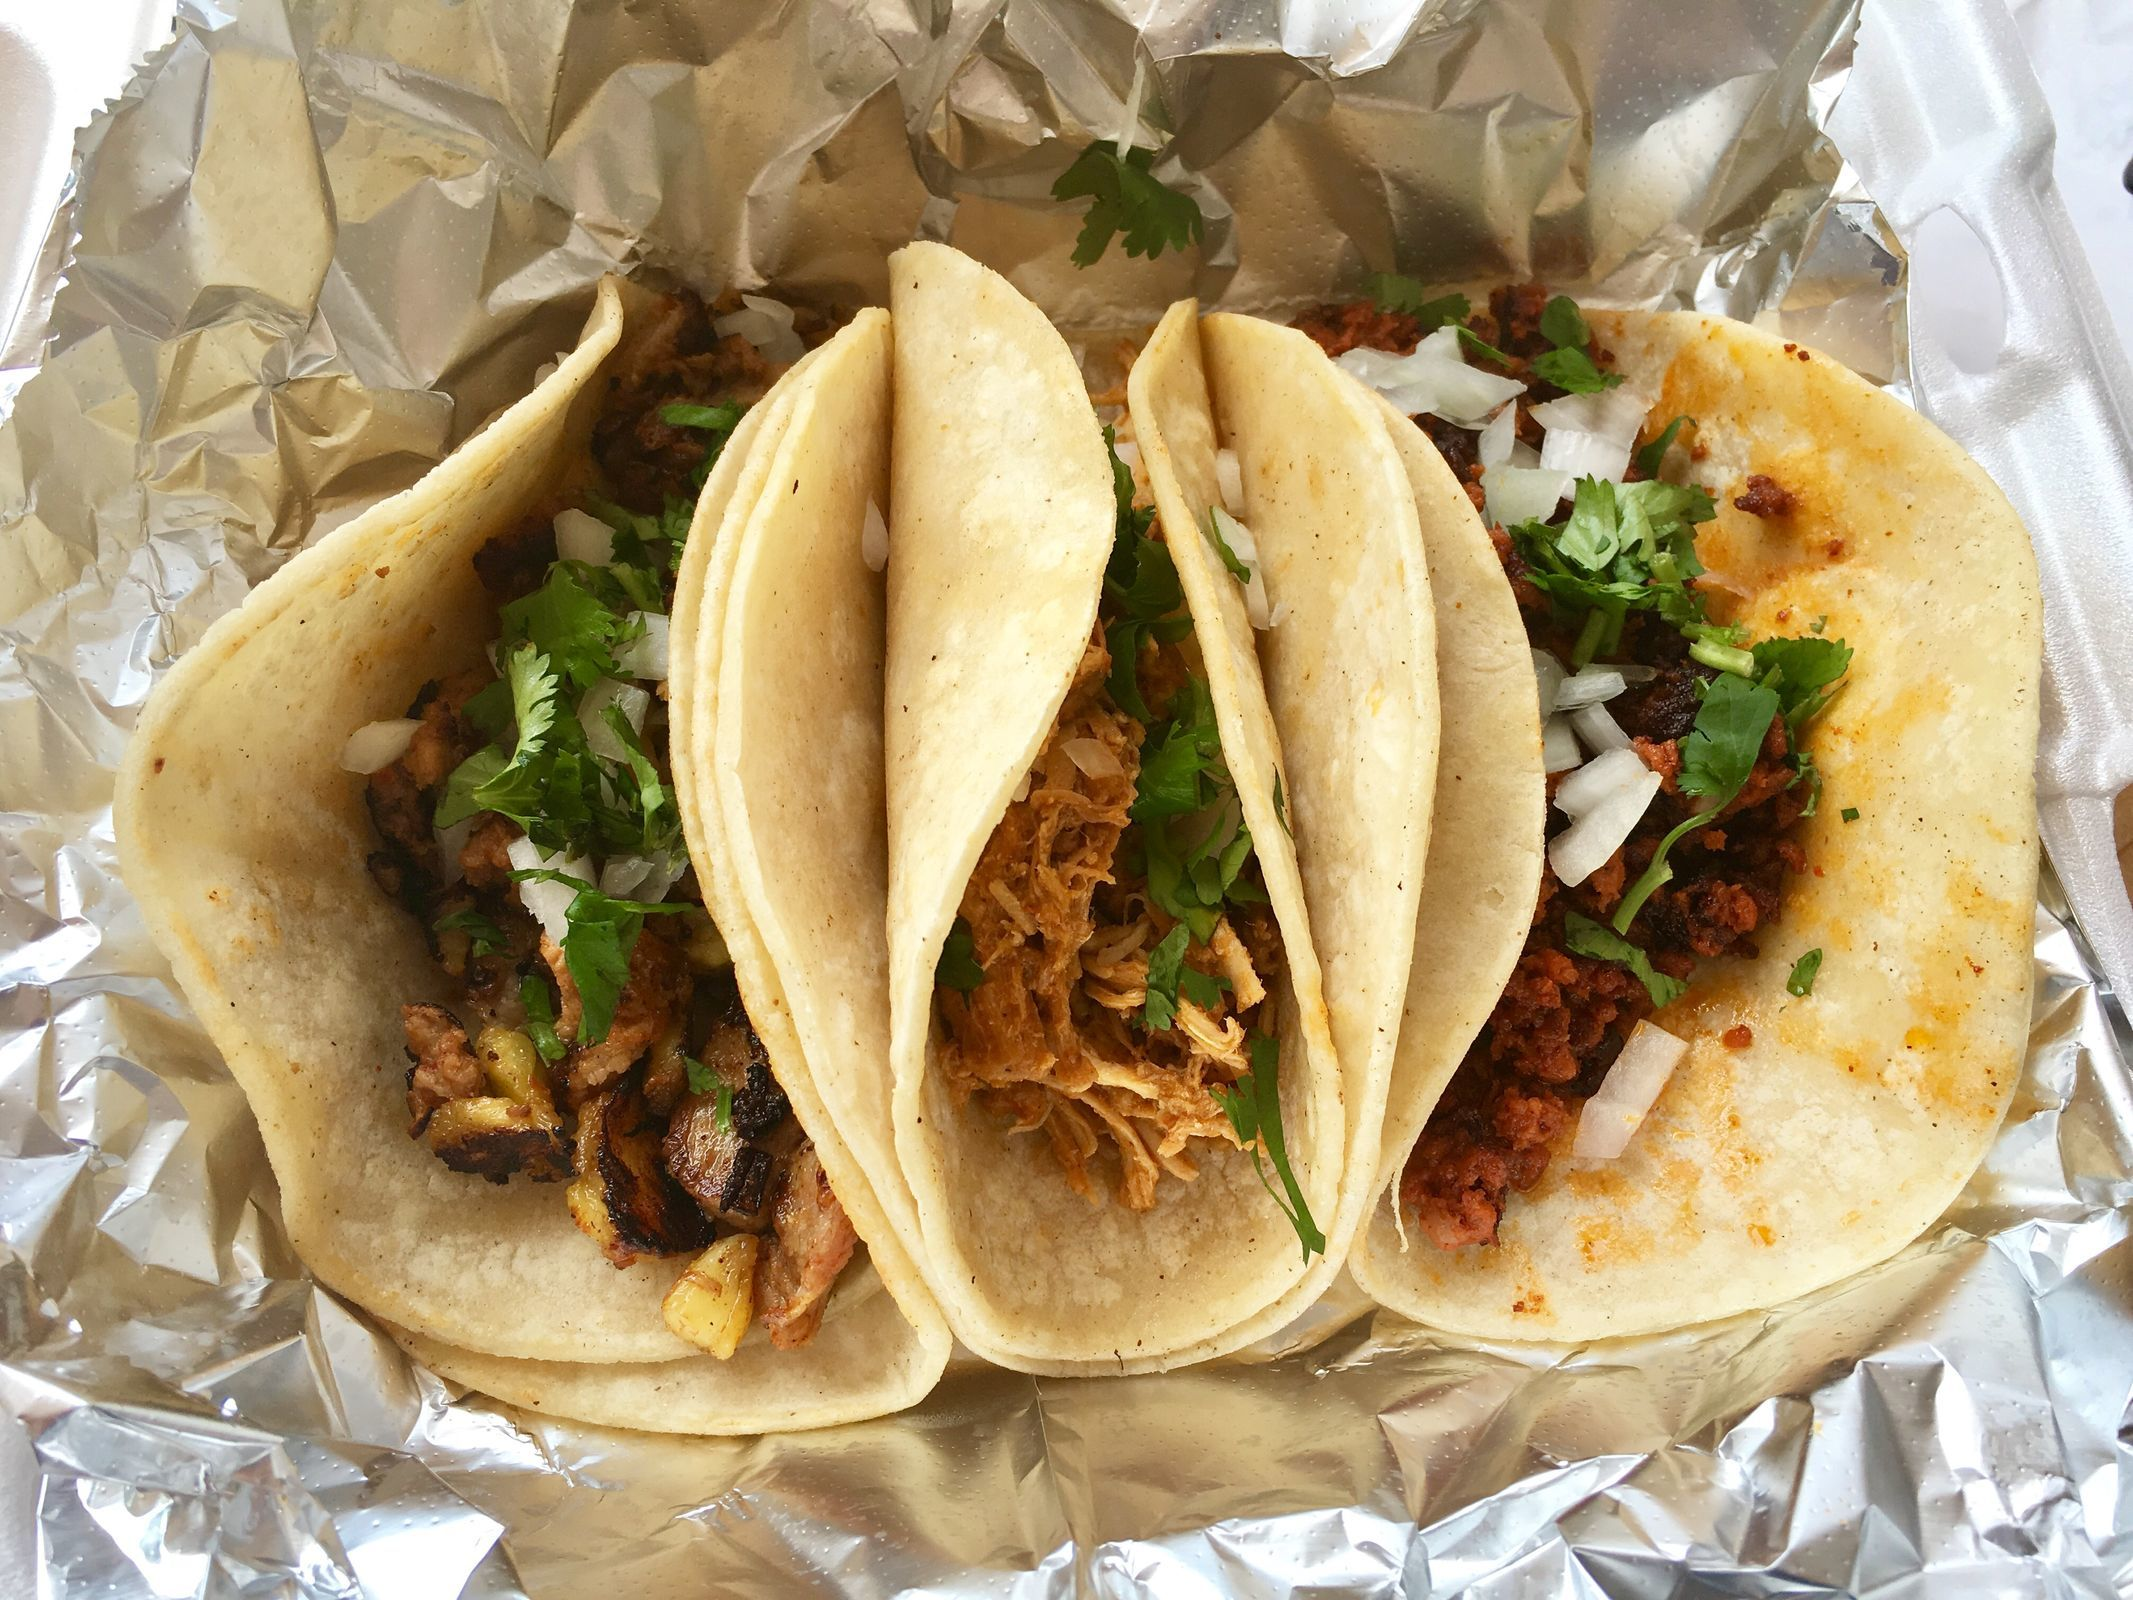 Tacos (al pastor, chicken tinga, and chorizo) at Tlaxkalli, 348 W. Gay St., West Chester. (MICHAEL KLEIN / Staff)